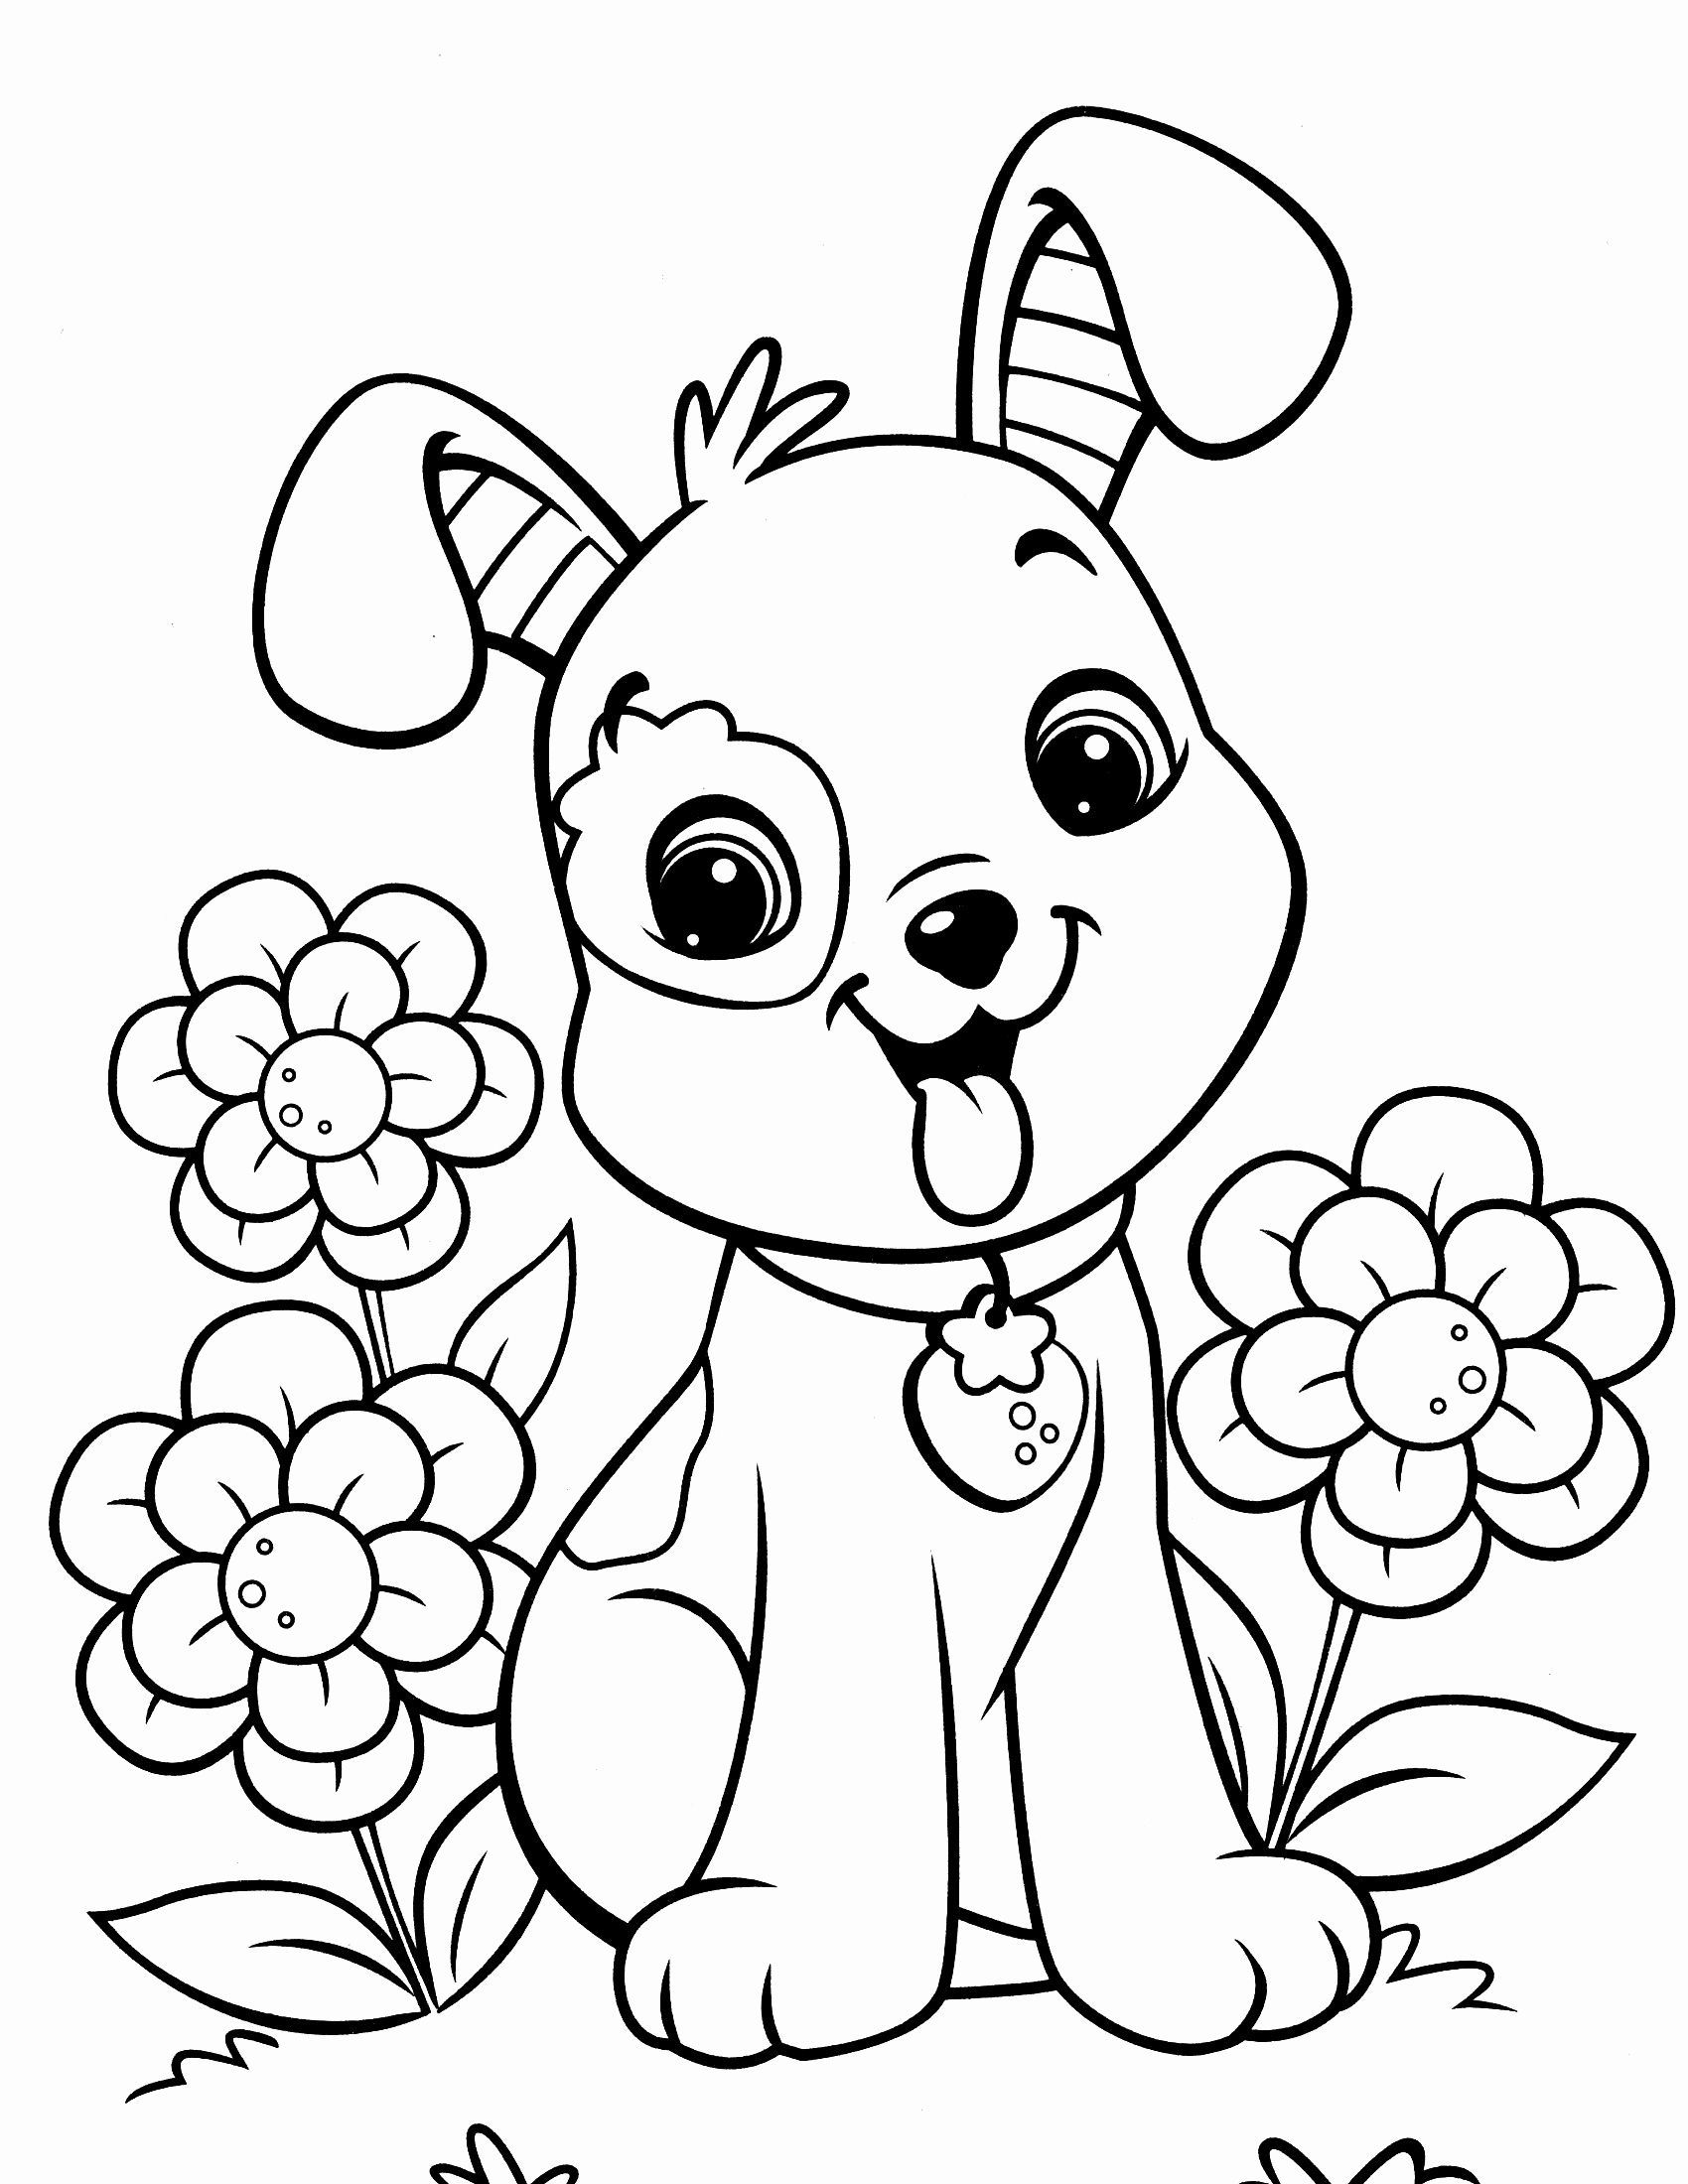 Coloring Pages Christmas Printable Free Beautiful Christmas Puppy Coloring Sheets Unique Christmas E Puppy Coloring Pages Dog Coloring Page Easy Coloring Pages